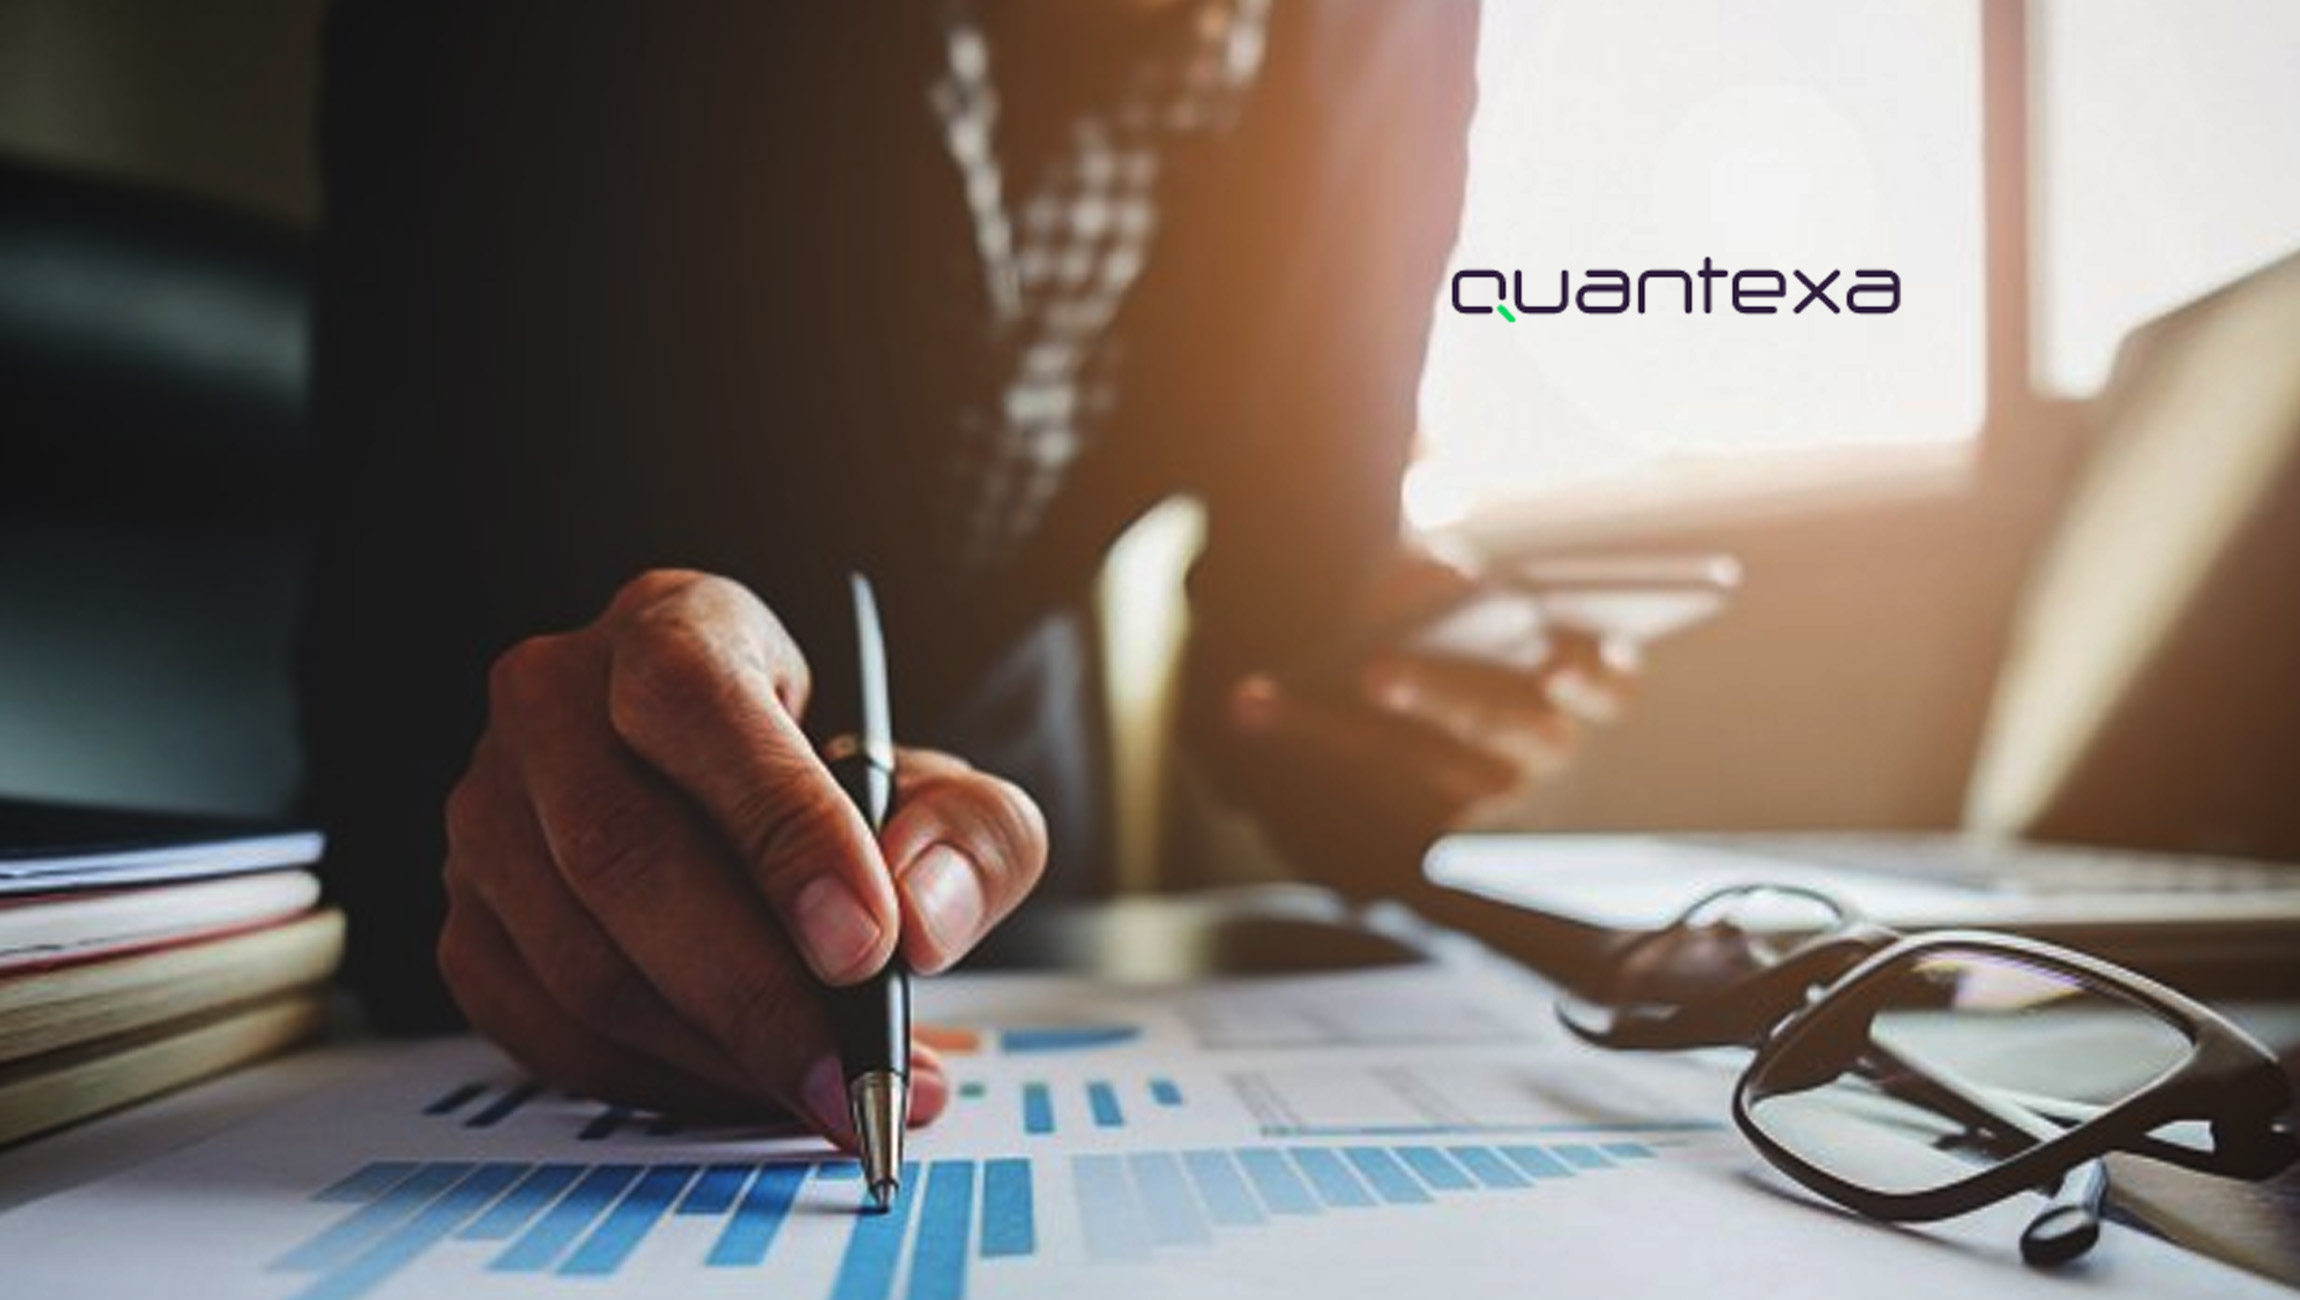 Quantexa Raises $64.7m in New Series C Funding to Drive Hyper-Growth in Big Data and Analytics Ecosystem